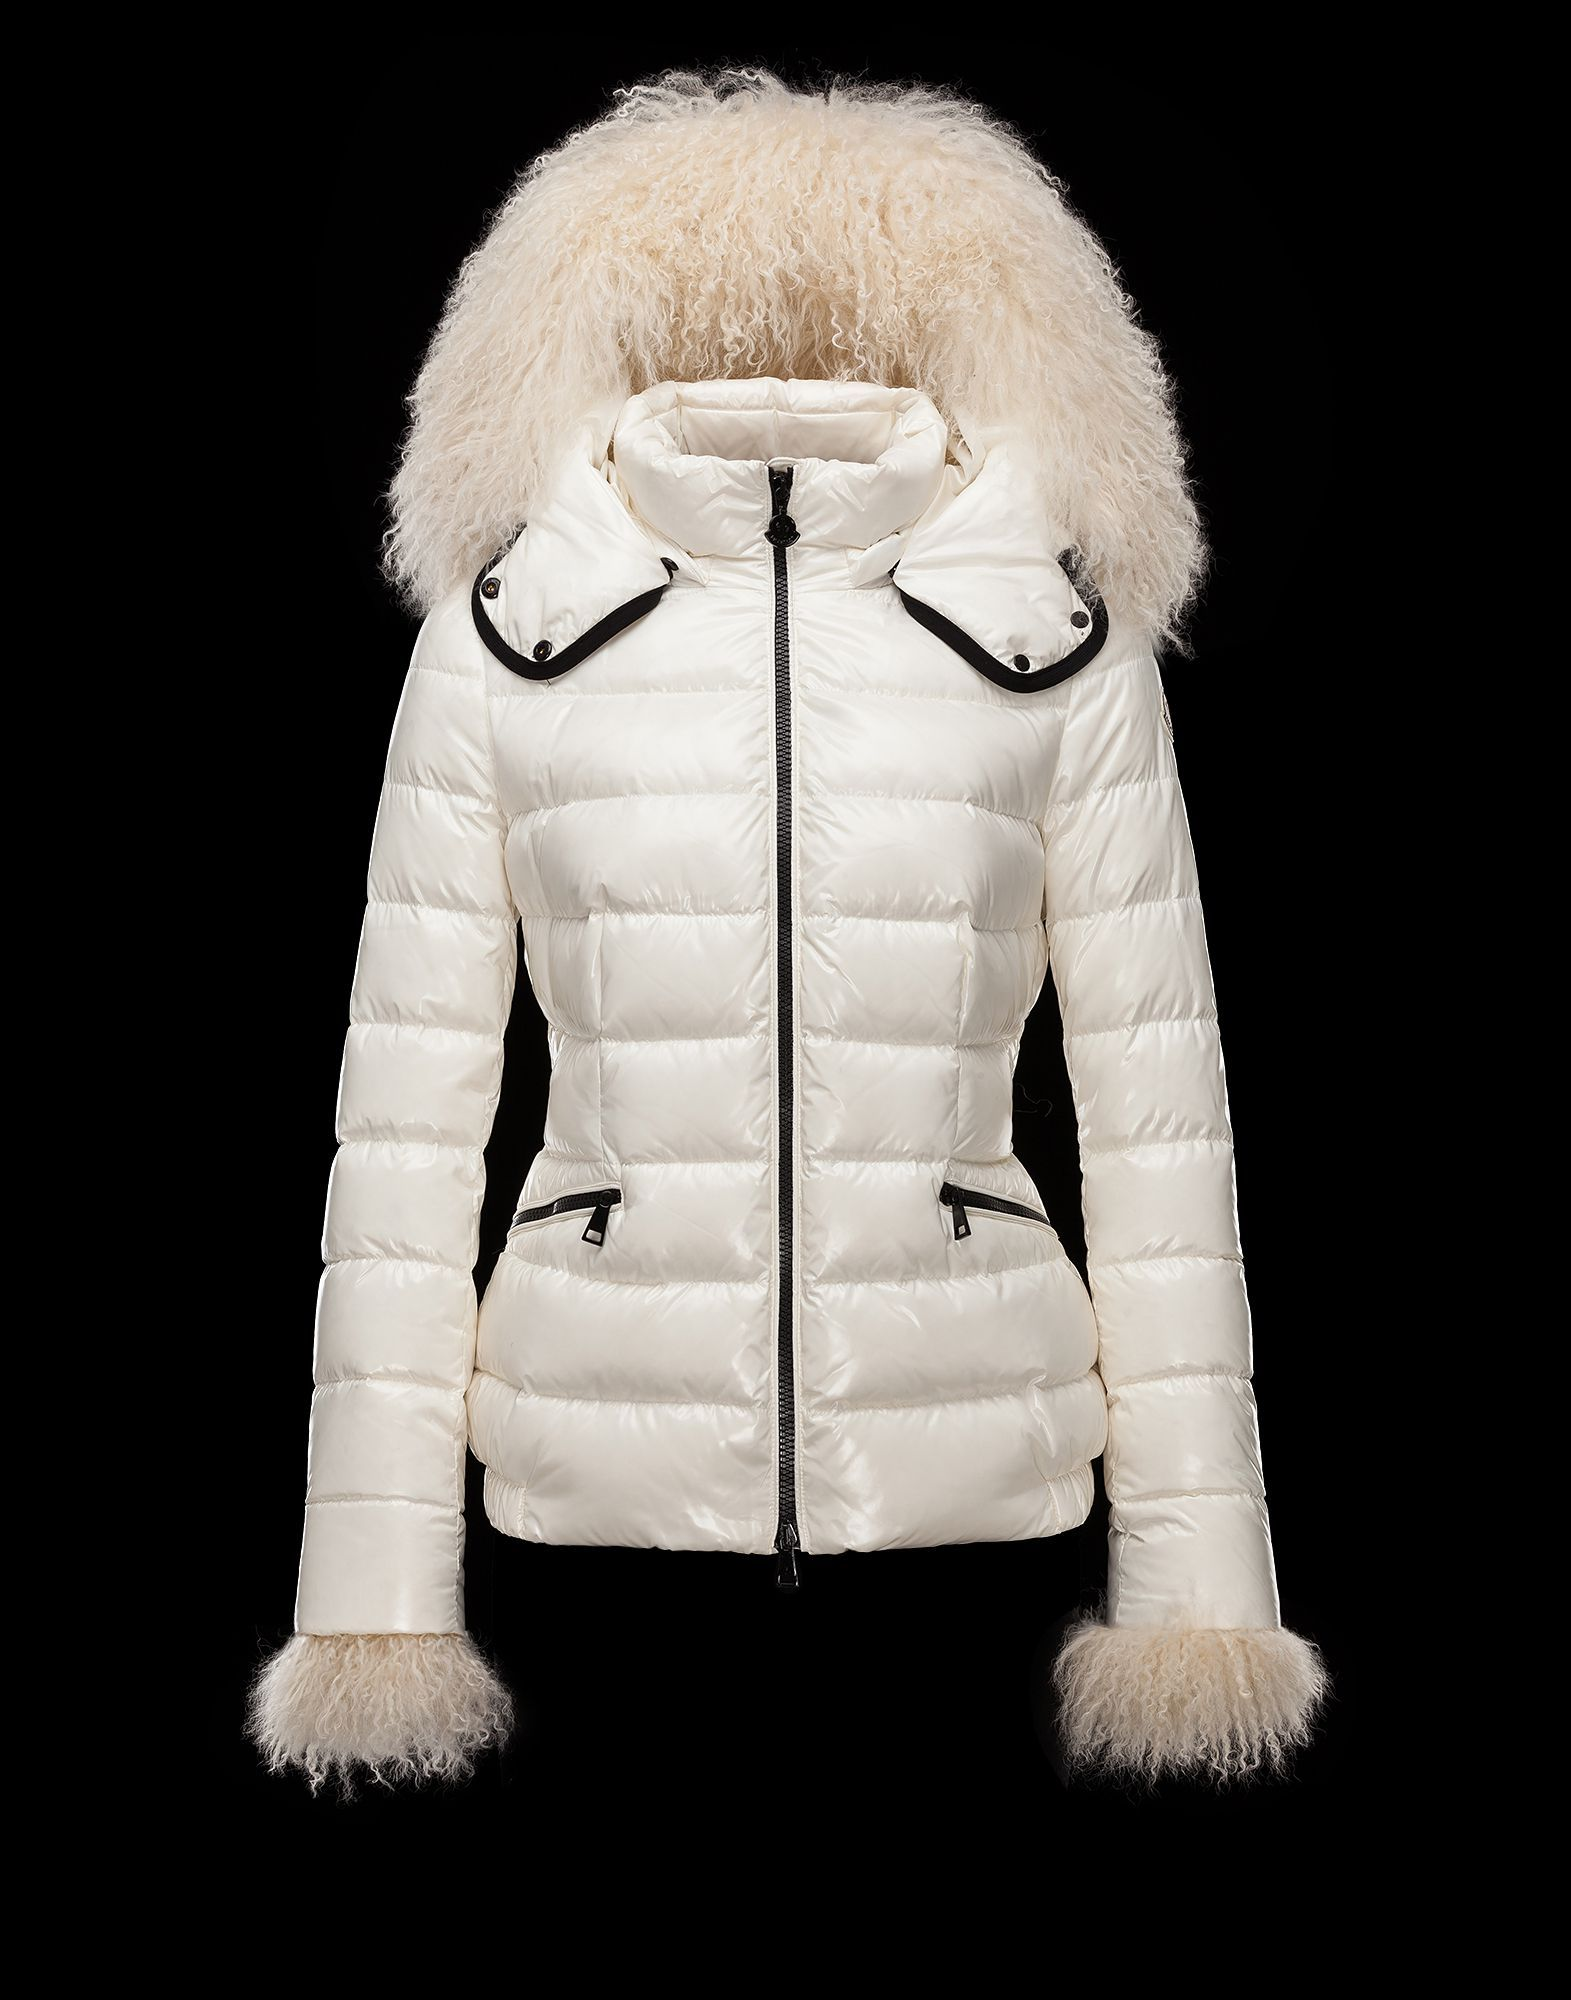 Moncler Sebiniere 29976929-only 1,865.00   810.00 Save  57% Shop a full  selection 3e79e8da1b5